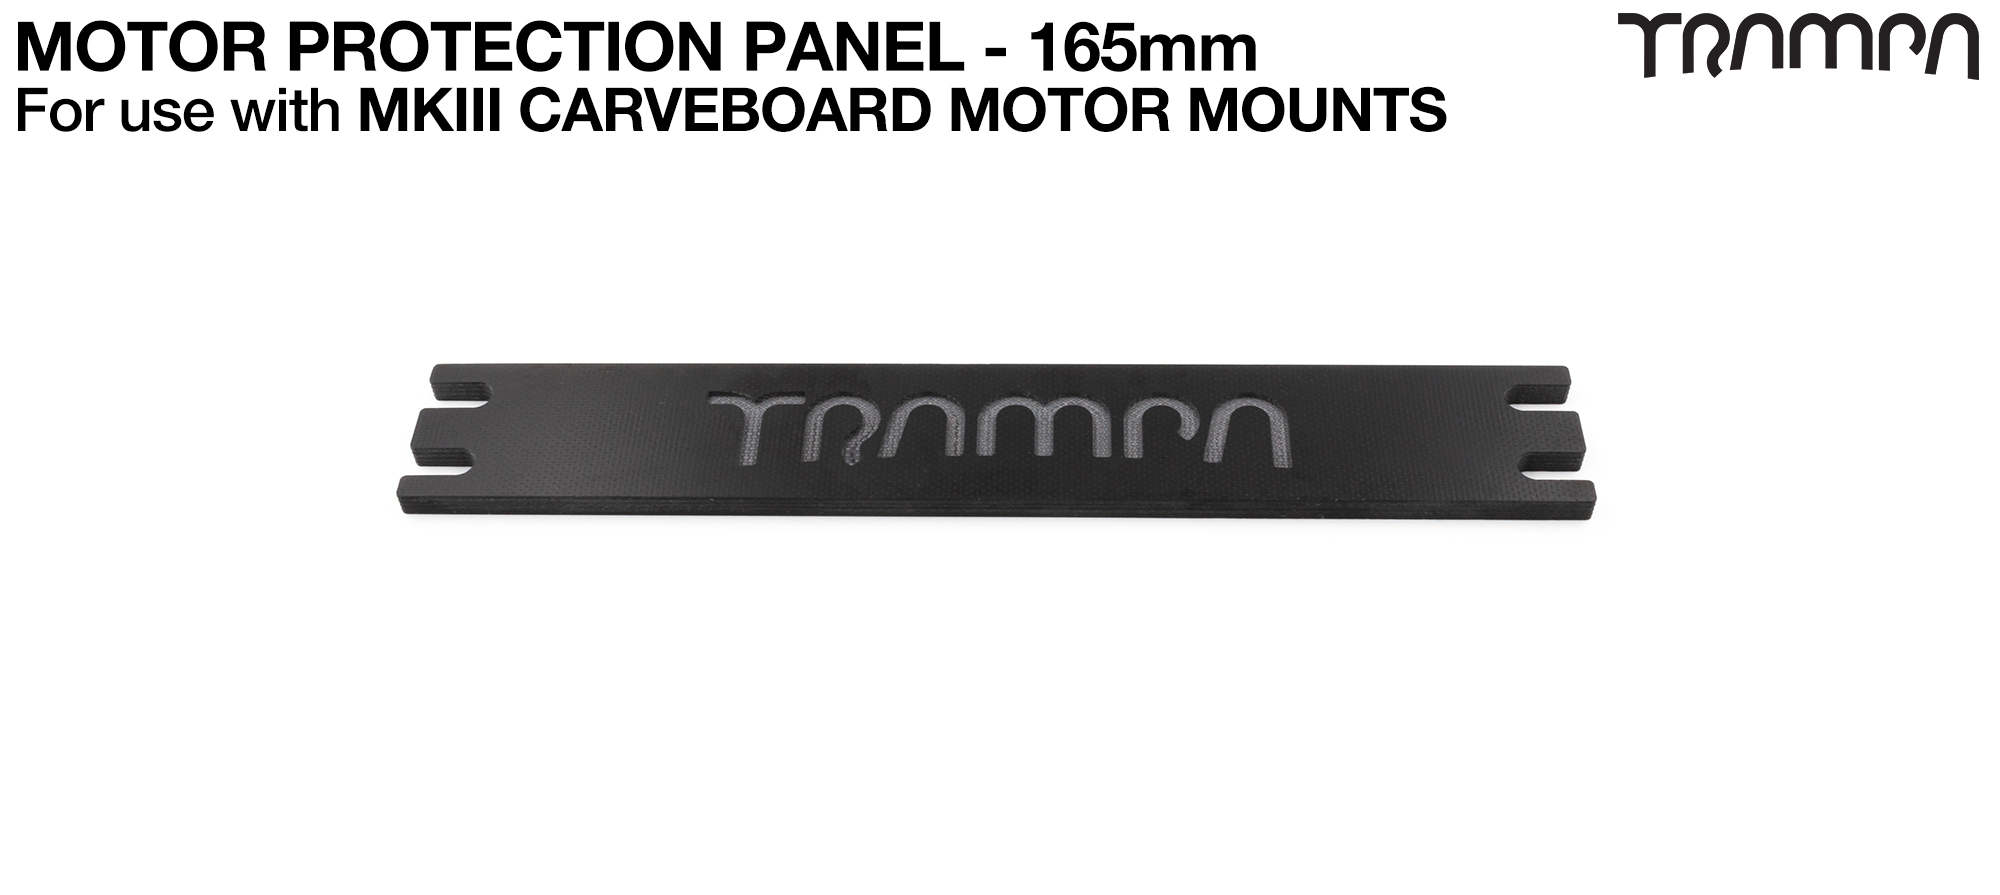 MkII URBAN & GUMMIES Carve Motor Mount Carbon Fibre Motor protection Panel